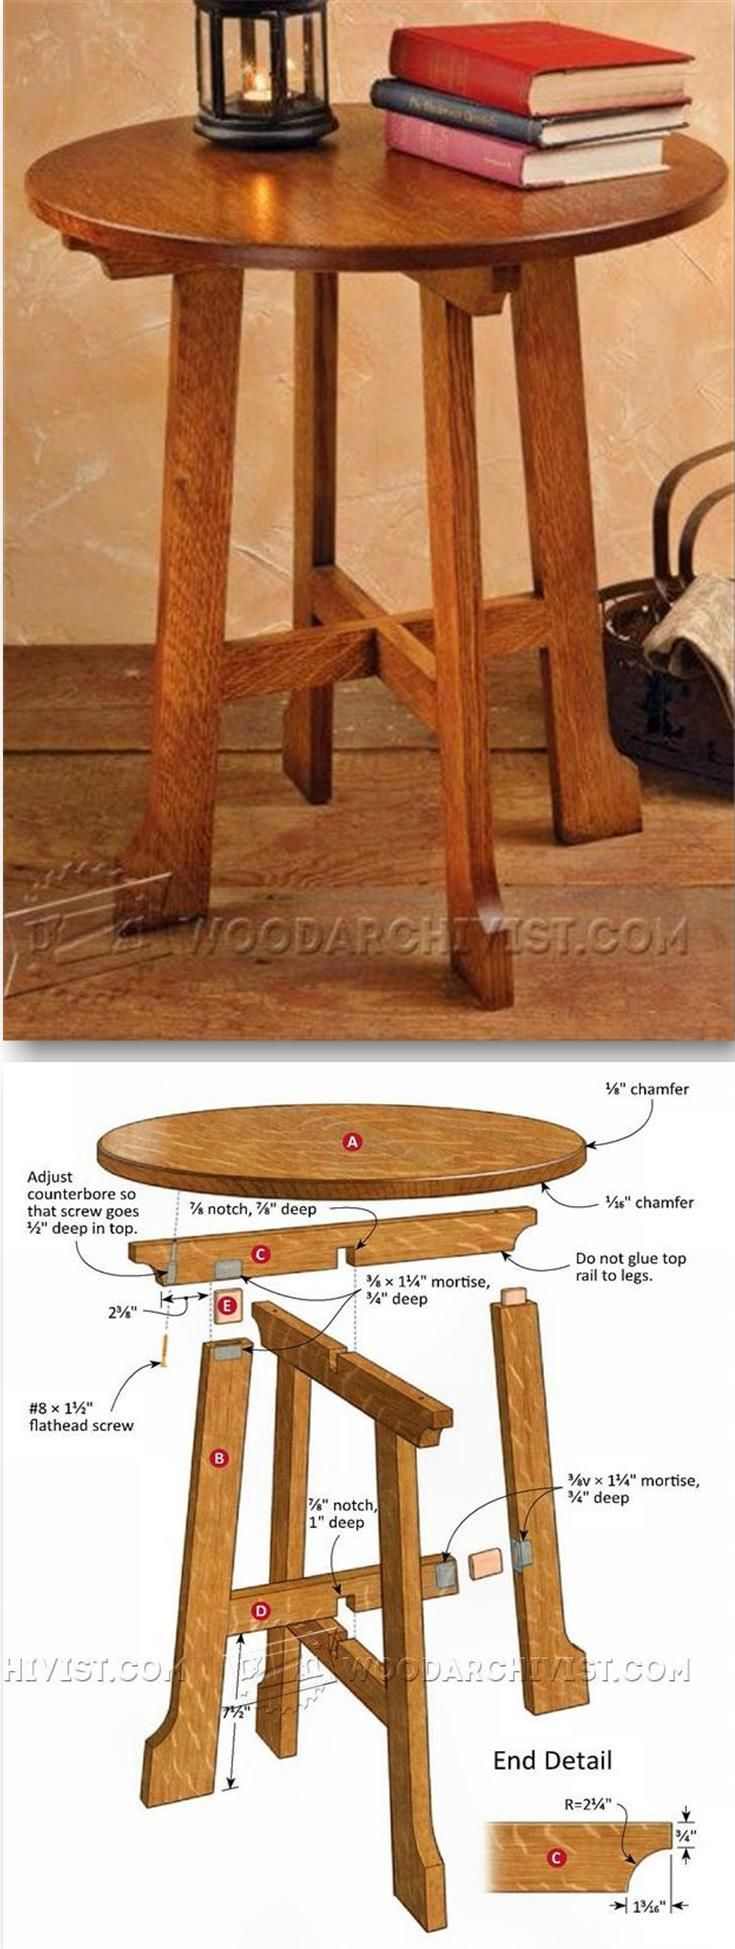 Arts and crafts furniture plans - Arts And Crafts End Table Plans Furniture Plans And Projects Woodarchivist Com